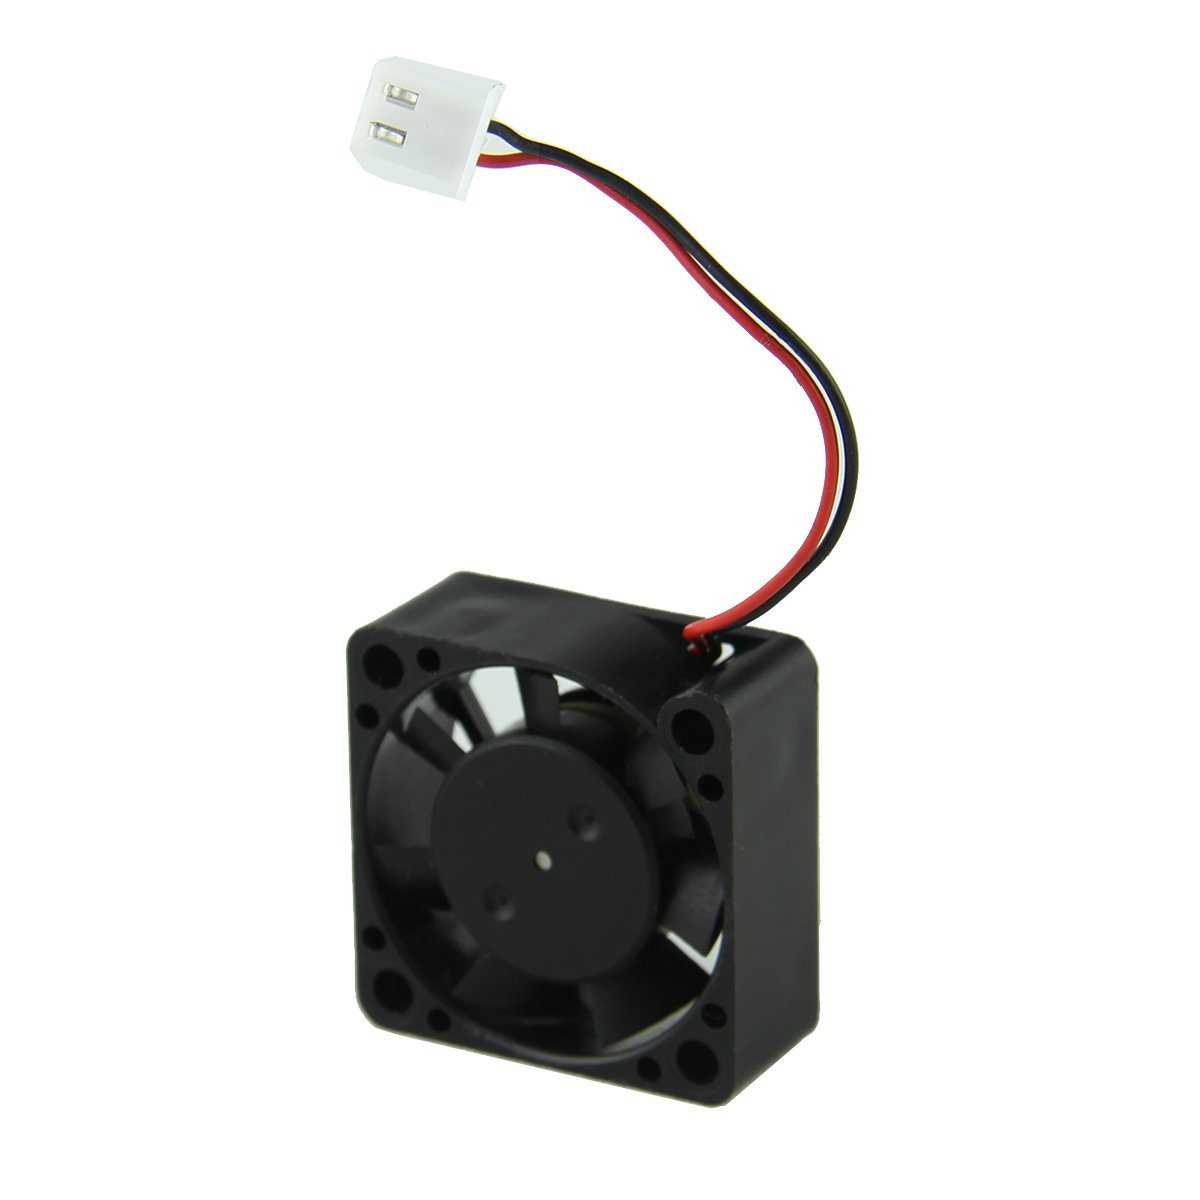 ABS Mini Active Cooling Fan For Raspberry Pi V32 Acrylic Case